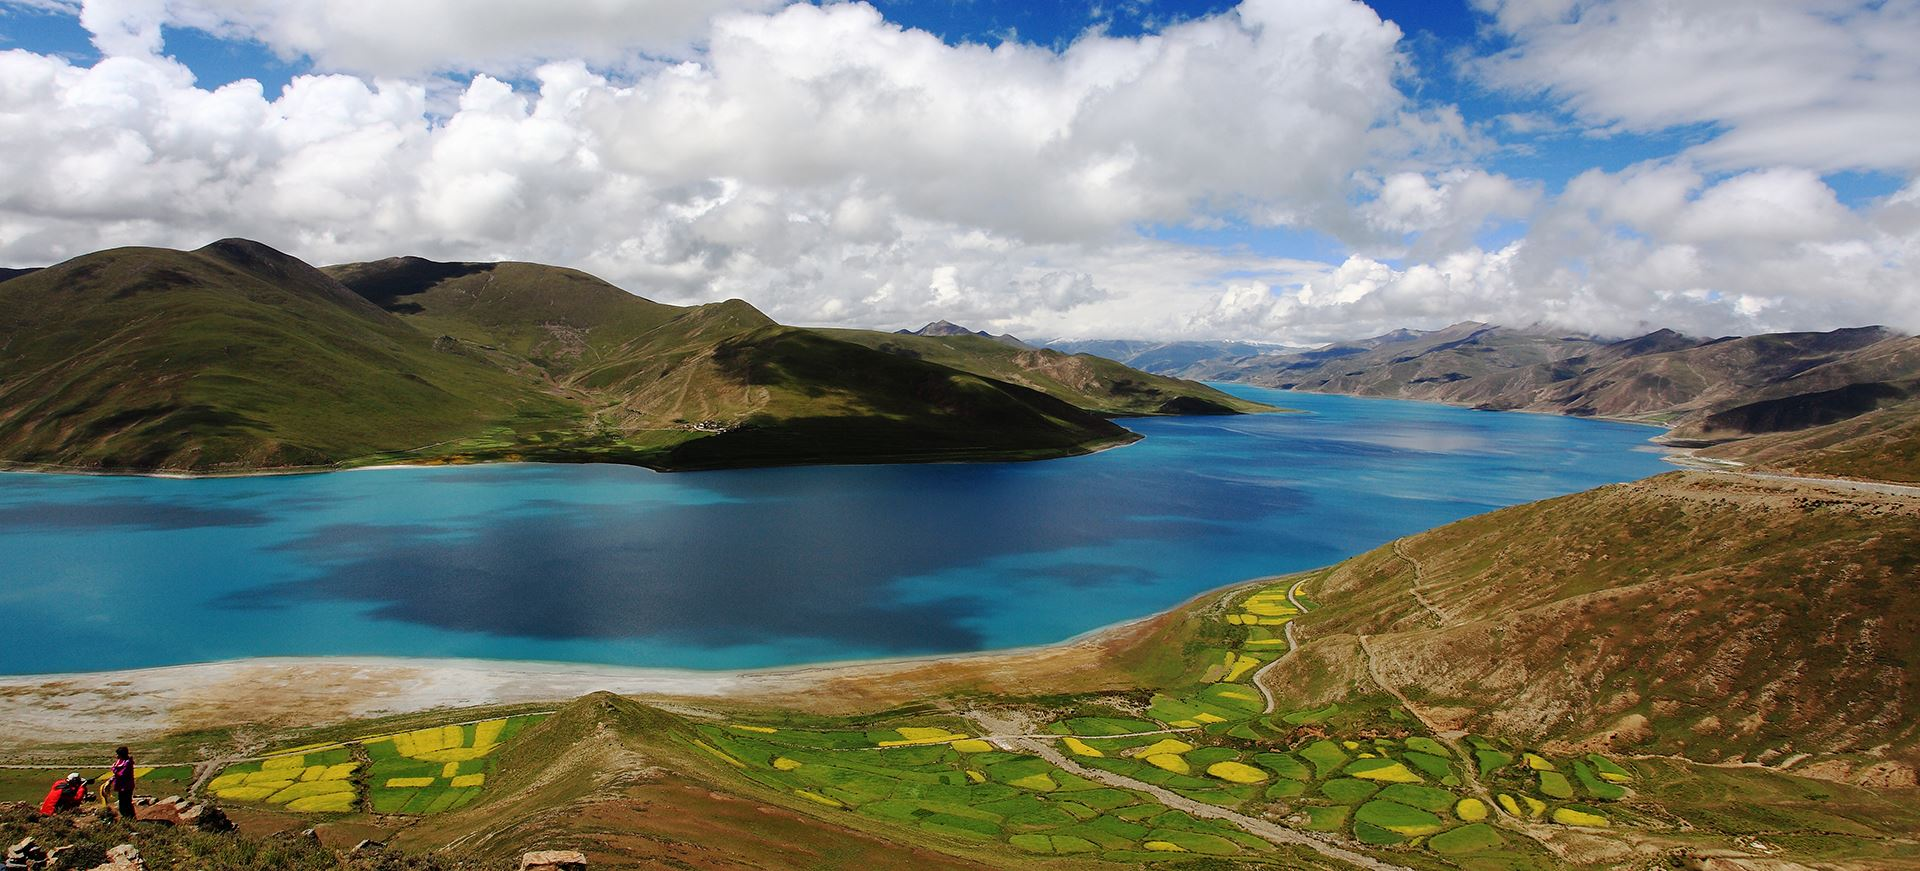 Tibet Classic Tour with Tibet Train from Lhasa to Xining